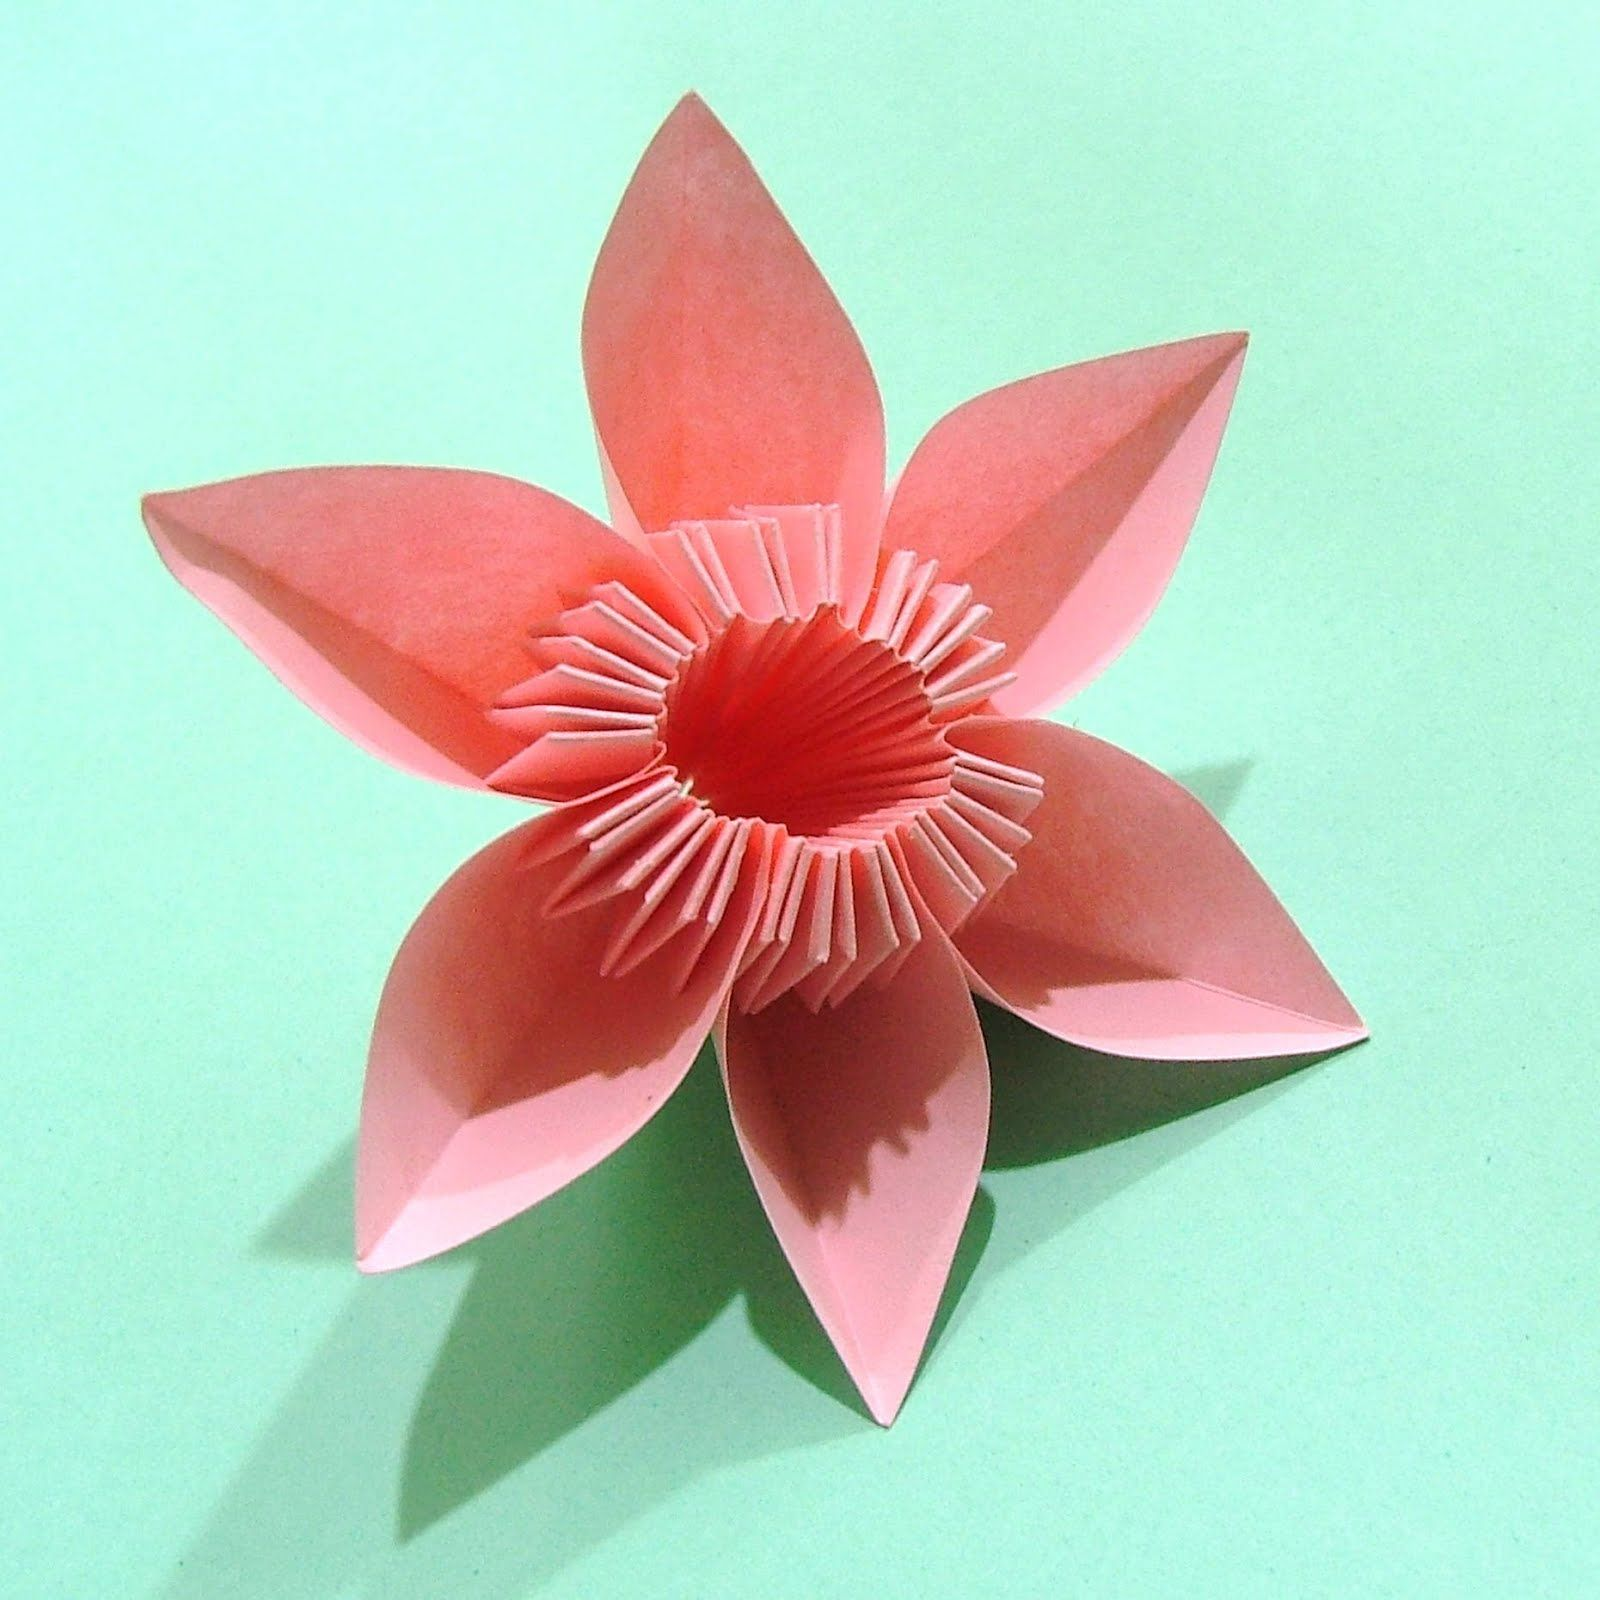 Origami Make Origami Flowers Simple Origami Flower Design Beautiful Origami Easy Origami Flower Paper Origami Flowers Origami Flowers